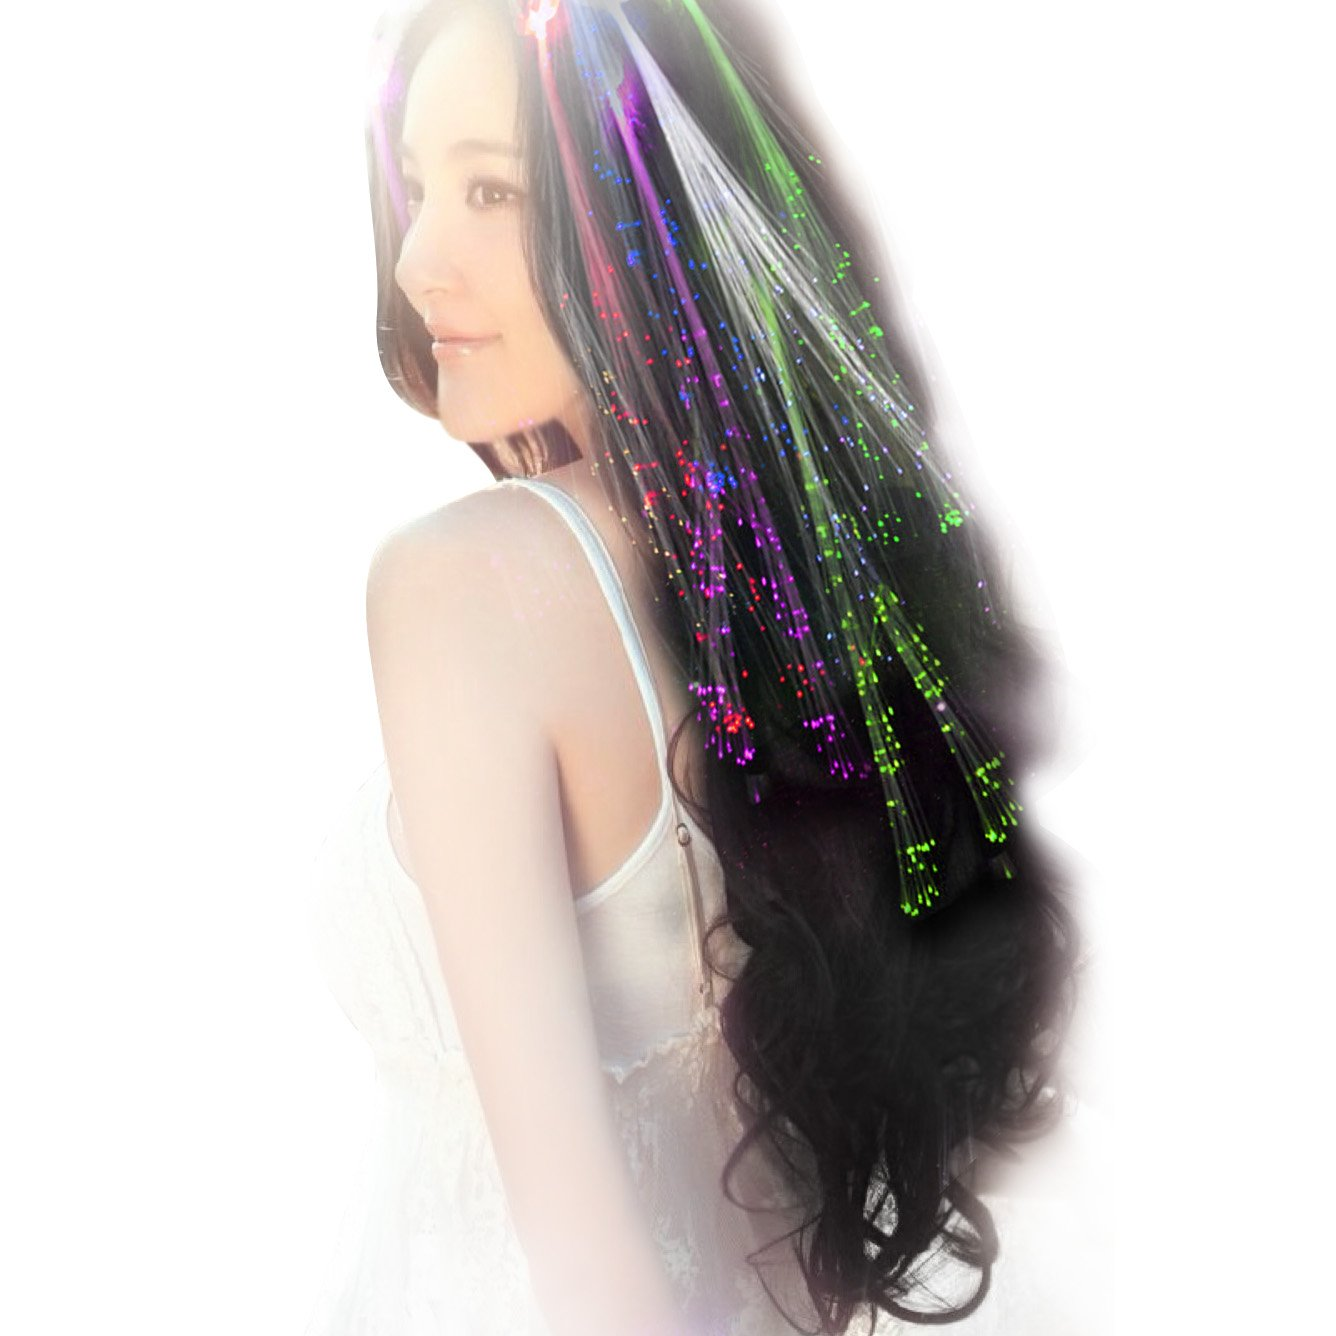 Acooe 10 Pack LED Multicolored Fiber Optic Lights up Flashing Hair, Light Up Toys, Barrettes for Party, Bar Dancing Hairpin, Hair Clip